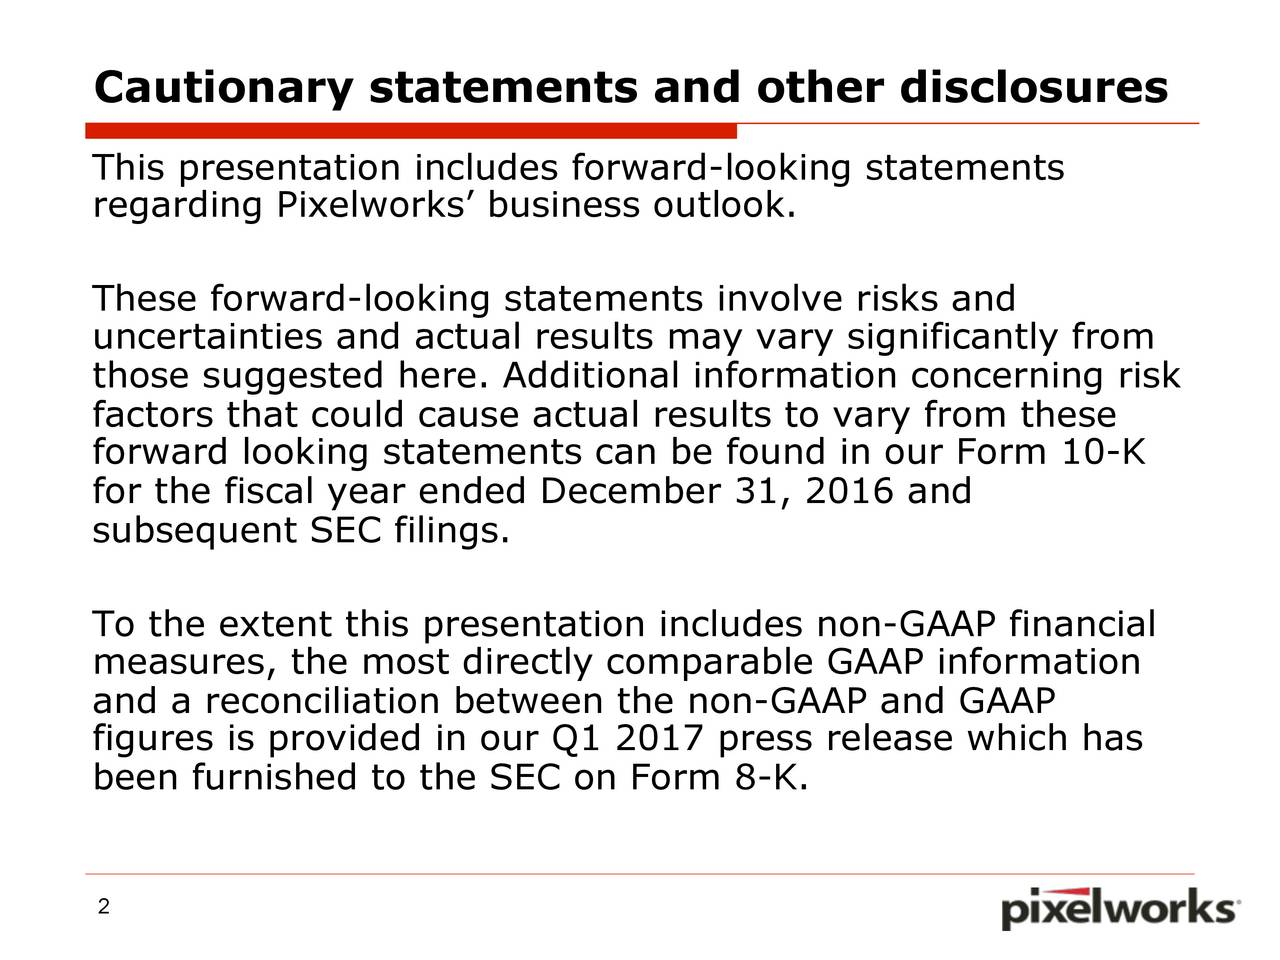 This presentation includes forward-looking statements regarding Pixelworks business outlook. These forward-looking statements involve risks and uncertainties and actual results may vary significantly from those suggested here. Additional information concerning risk factors that could cause actual results to vary from these forward looking statements can be found in our Form 10-K for the fiscal year ended December 31, 2016 and subsequent SEC filings. To the extent this presentation includes non-GAAP financial measures, the most directly comparable GAAP information and a reconciliation between the non-GAAP and GAAP figures is provided in our Q1 2017 press release which has been furnished to the SEC on Form 8-K. 2